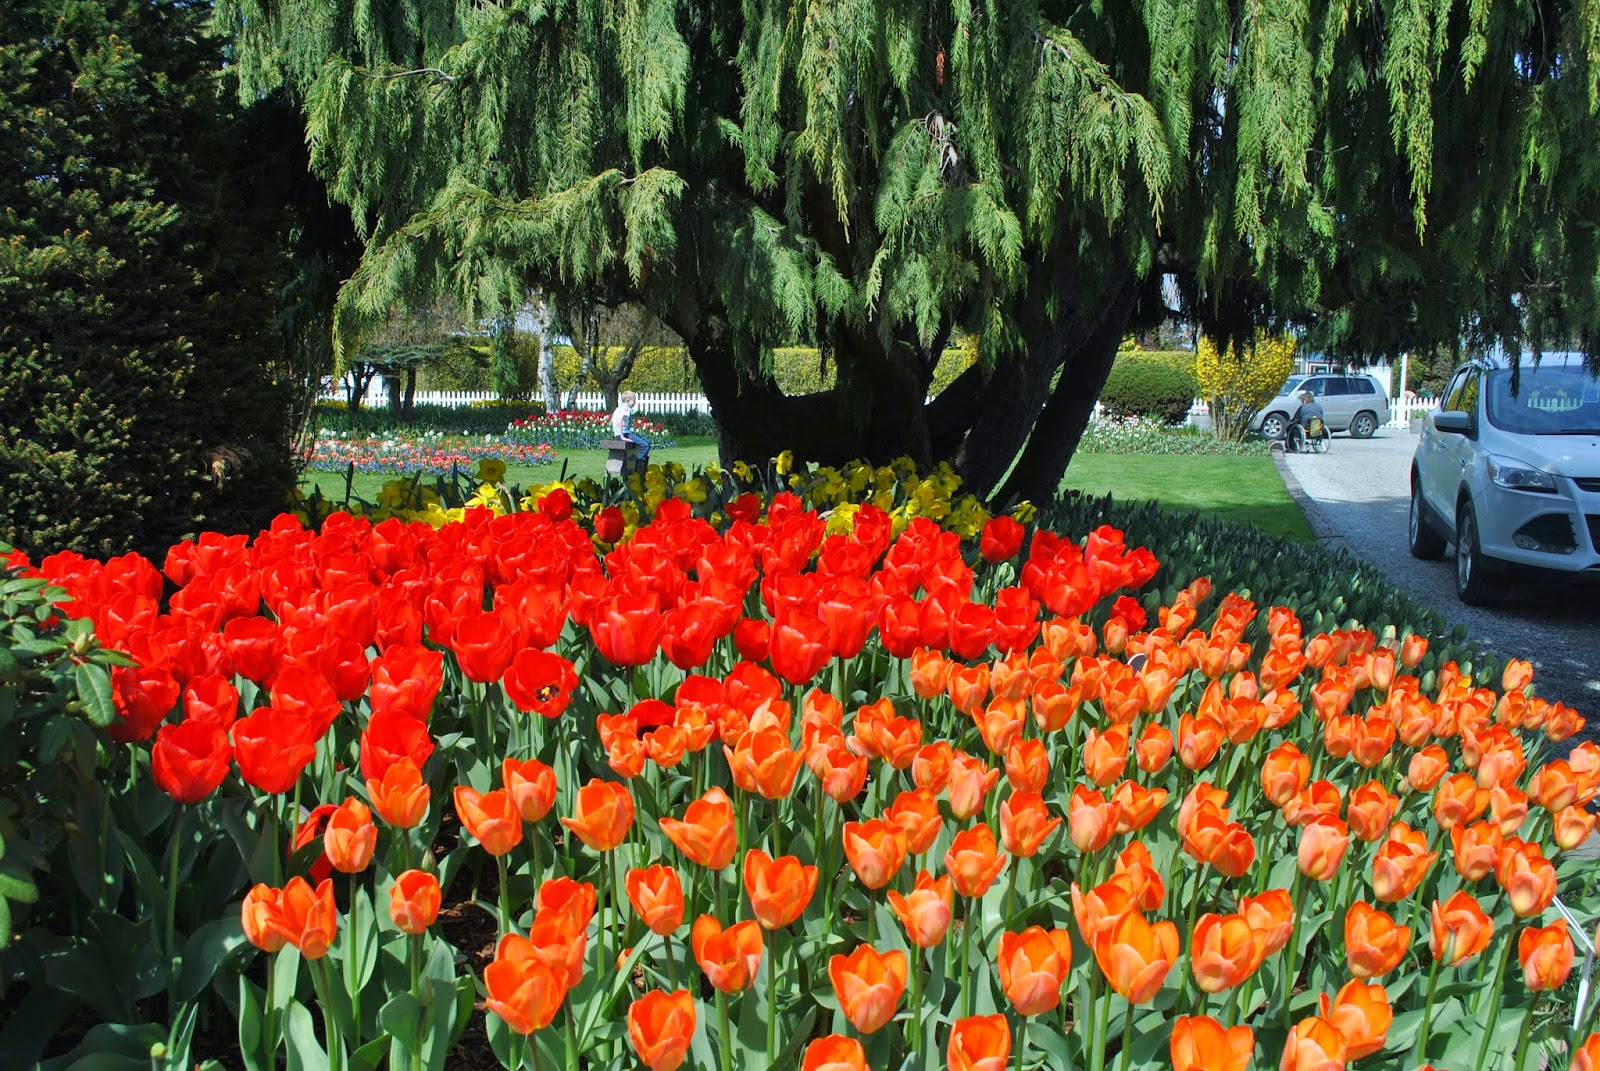 Tulip festival, tulip flowers, girl in a flower garden, Beautiful flowers and beautiful girl,beautiful tulips,  Places to visit near Seattle,